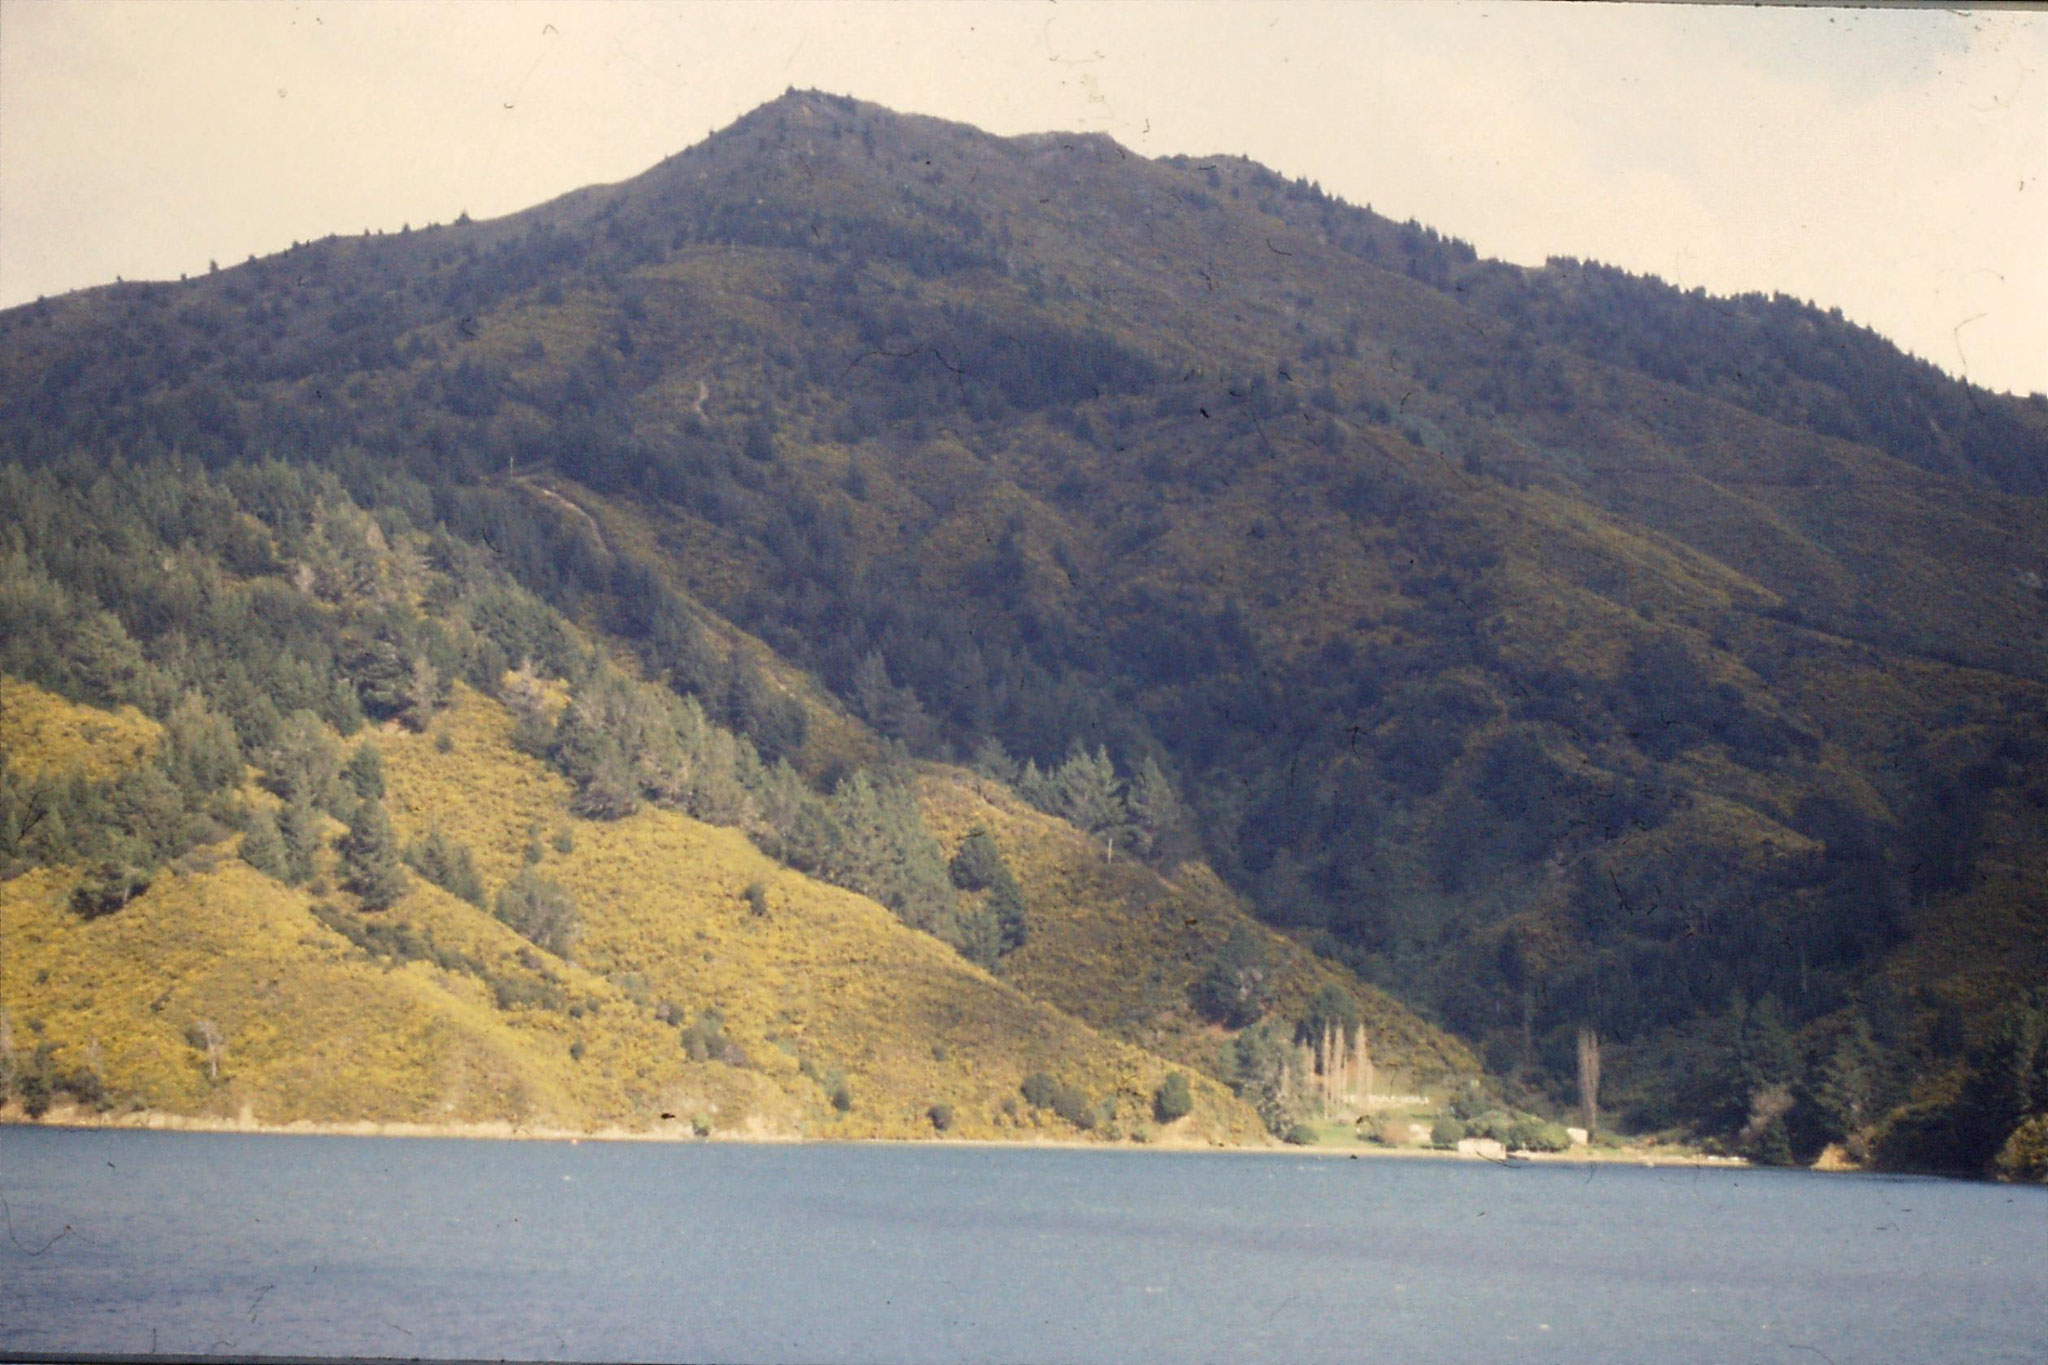 7/8/1990: 0: Wellington - Picton Ferry, Queen Charlotte Sound